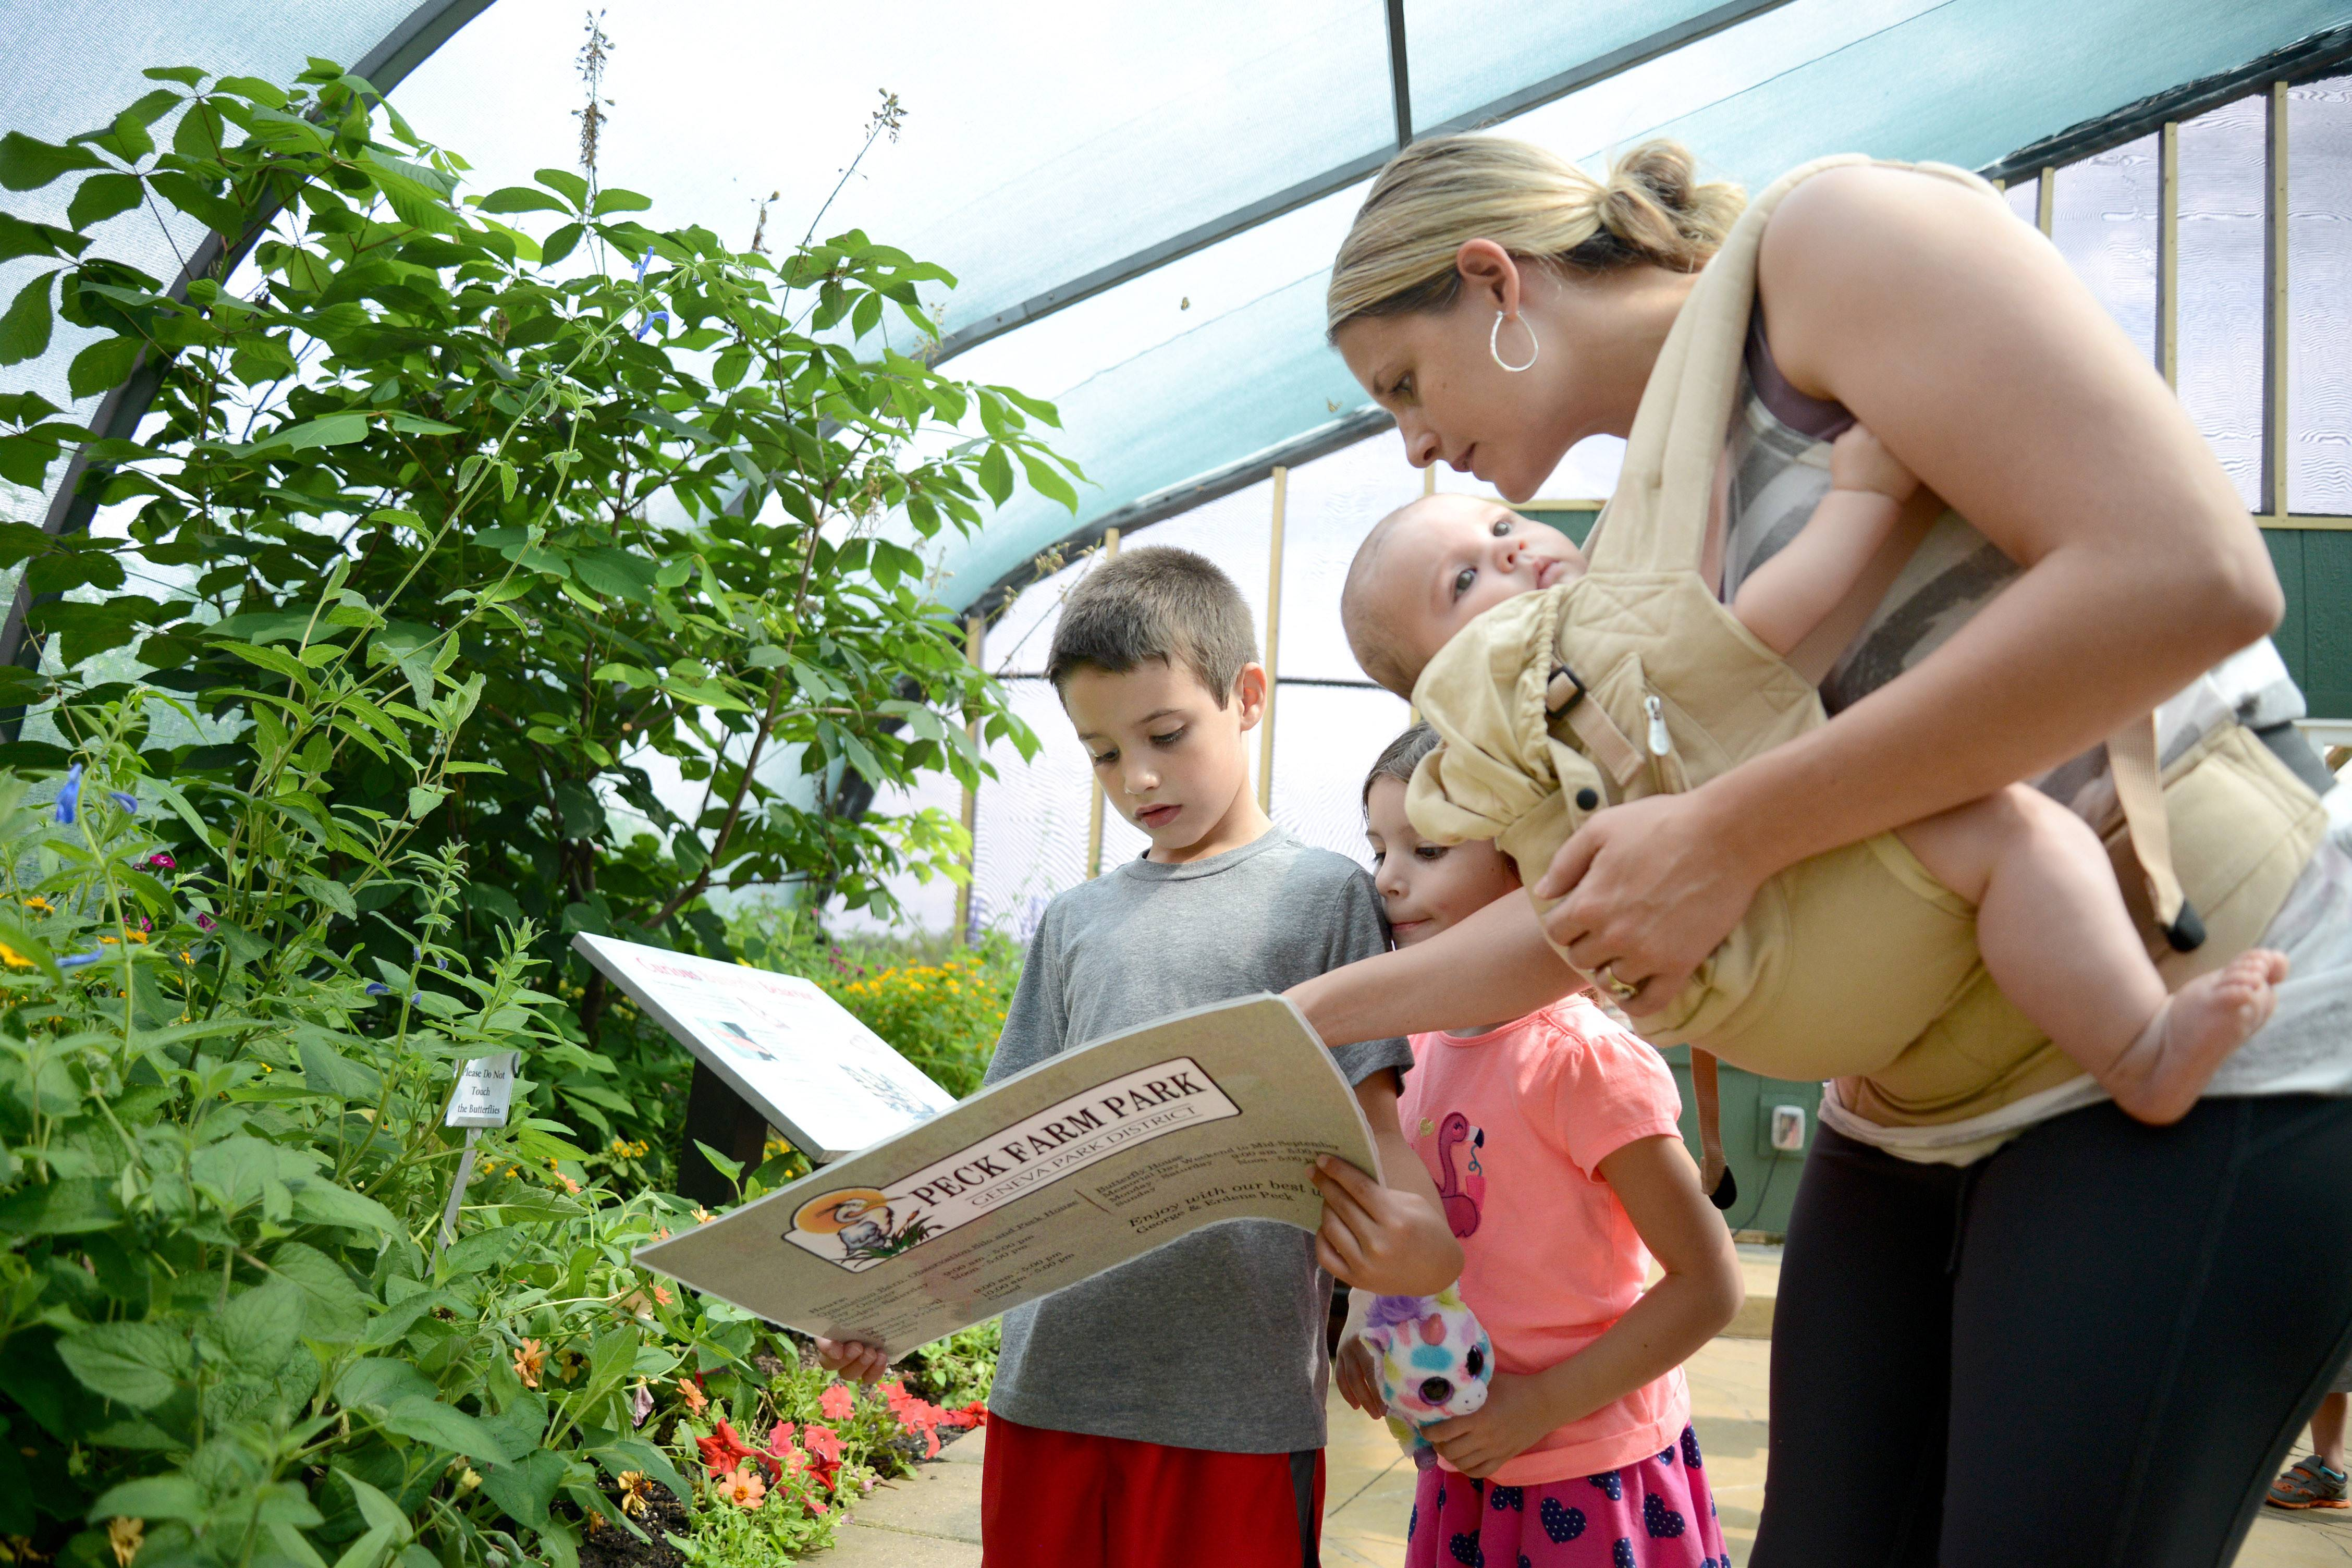 Angela Concha of Pingree Grove helps her children, Devin, 7, and Alexiana, 5, identify butterflies while holding their brother, Camden, 5 months, Wednesday at Peck Farm Park's Butterfly House in Geneva. The Concha family, including father Joe, wandered around the enclosure spotting more than 15 varieties of butterflies. Alexiana is a big fan of butterflies, and says her favorite species is the Queen butterfly, which was on display at the house.